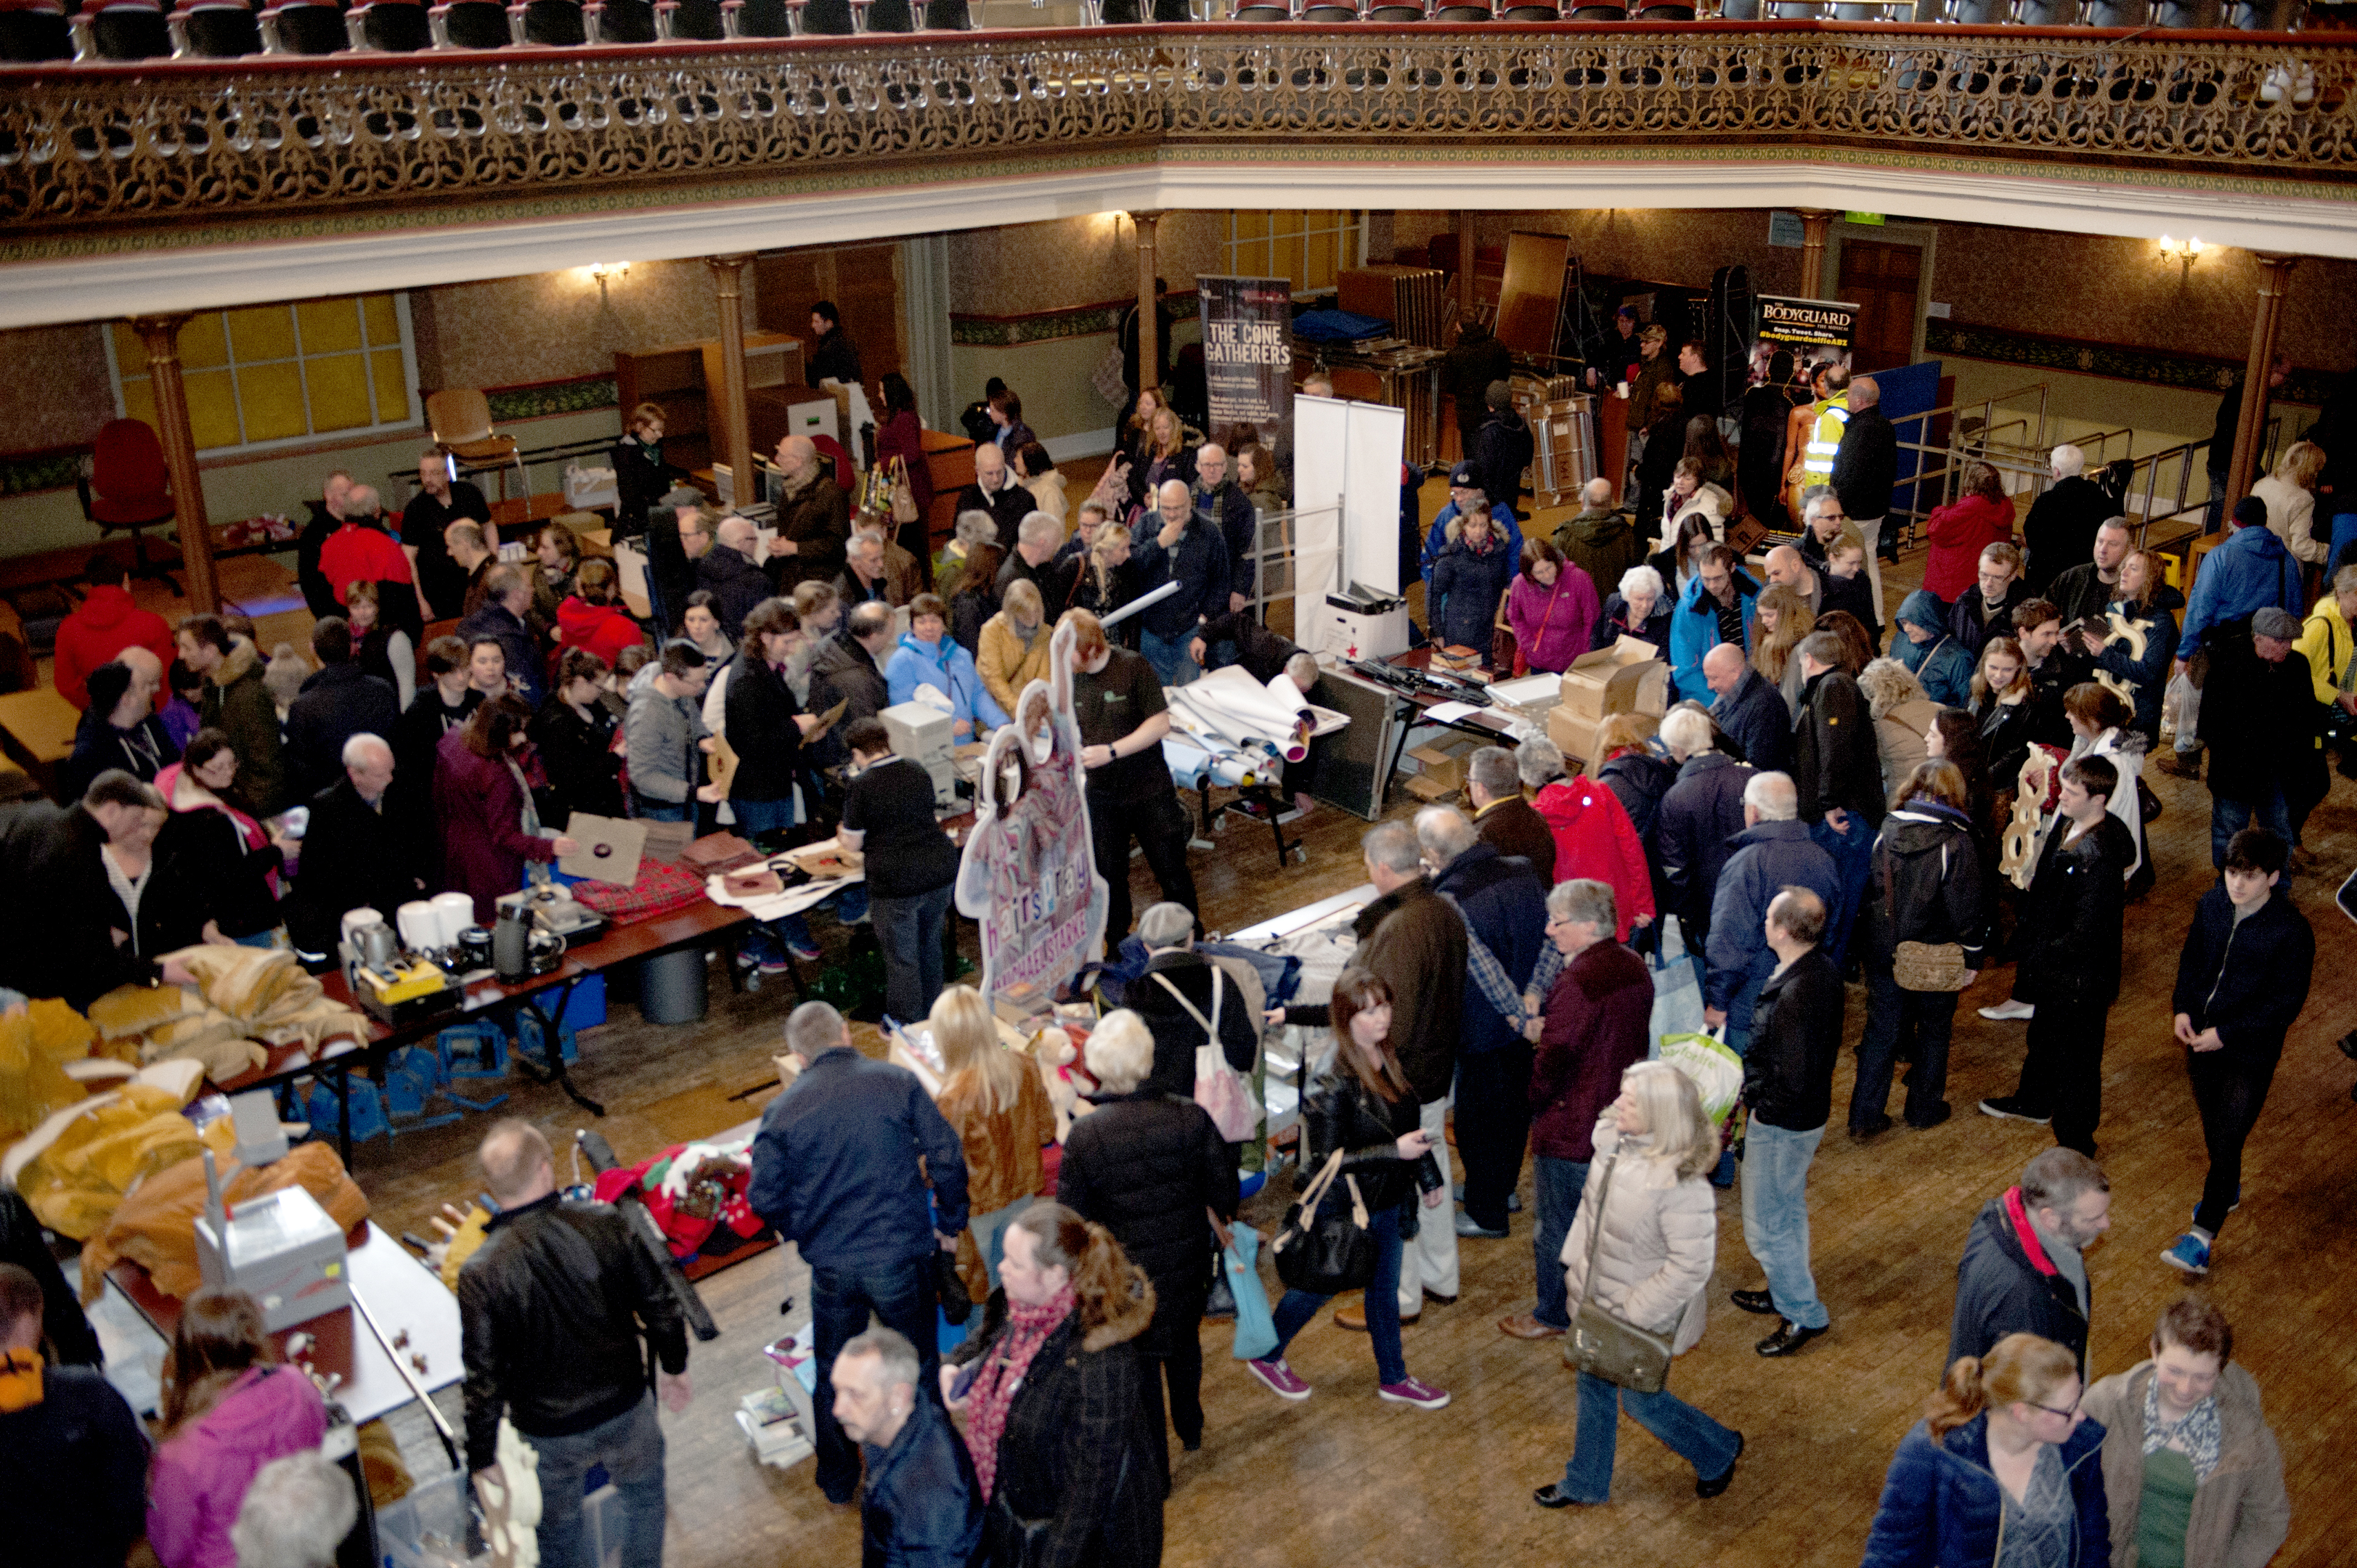 Hundreds of people flocked to the sale of items at the Music Hall.